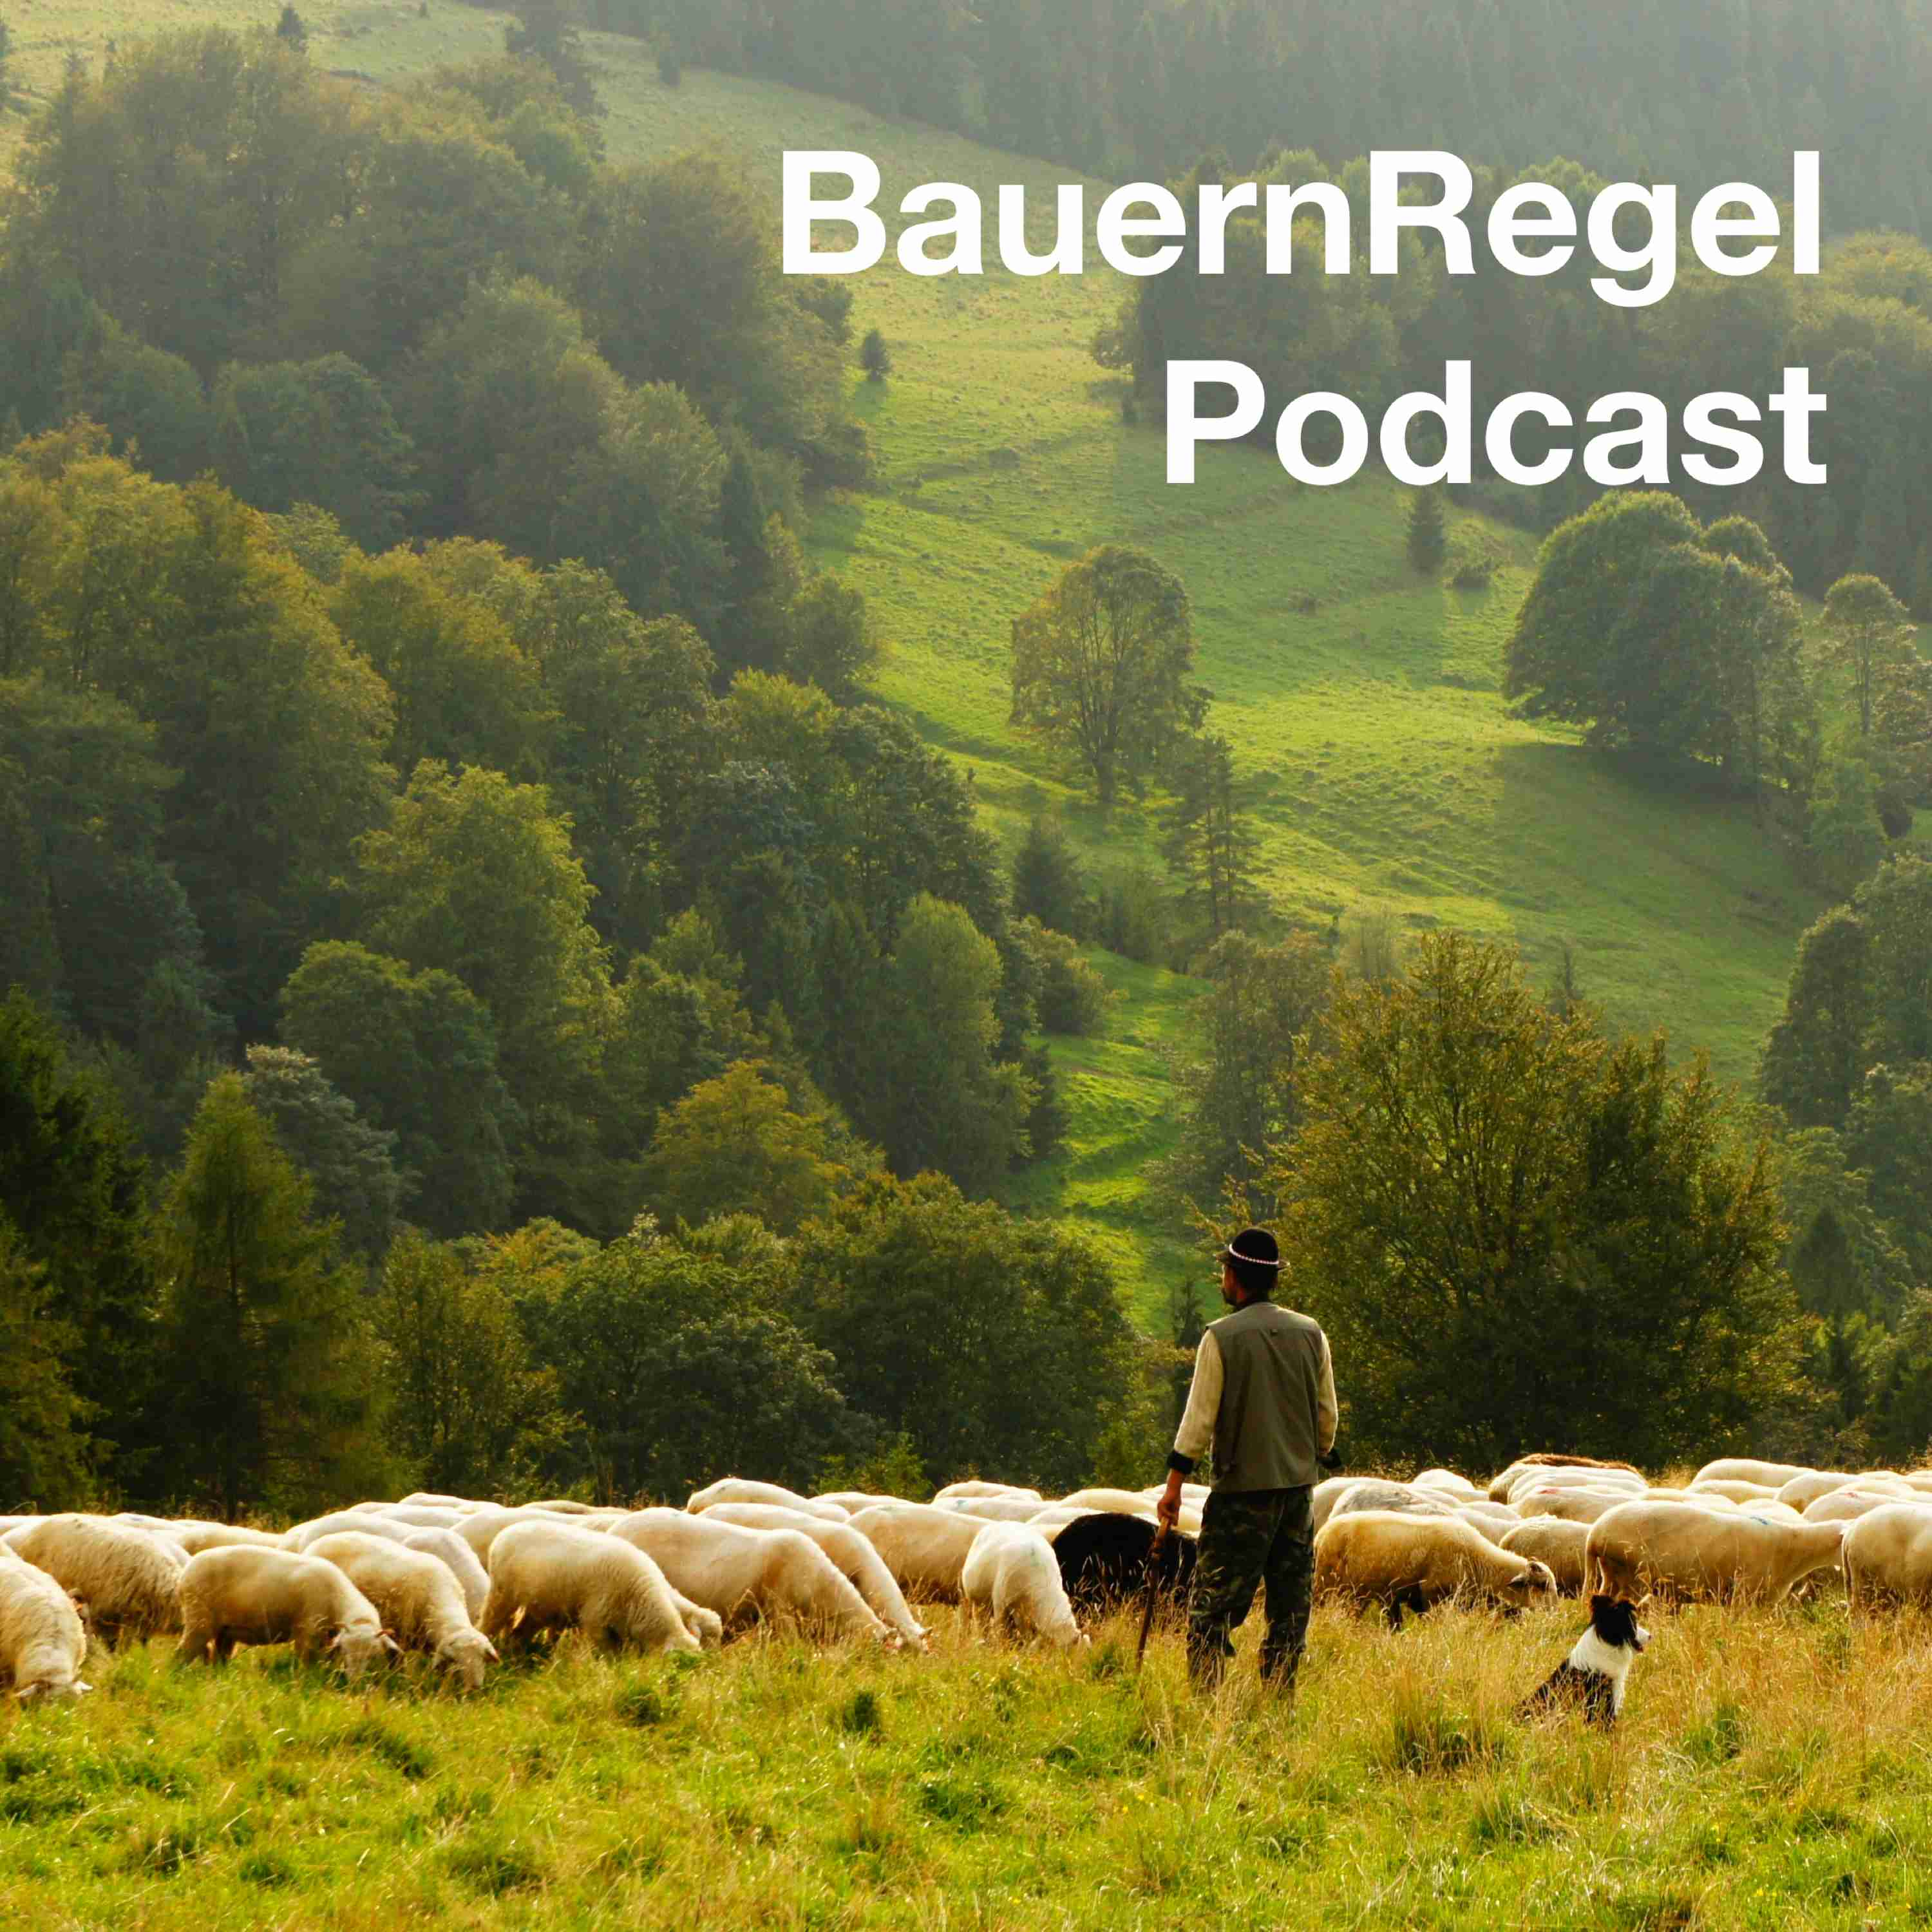 BauernRegel Podcast